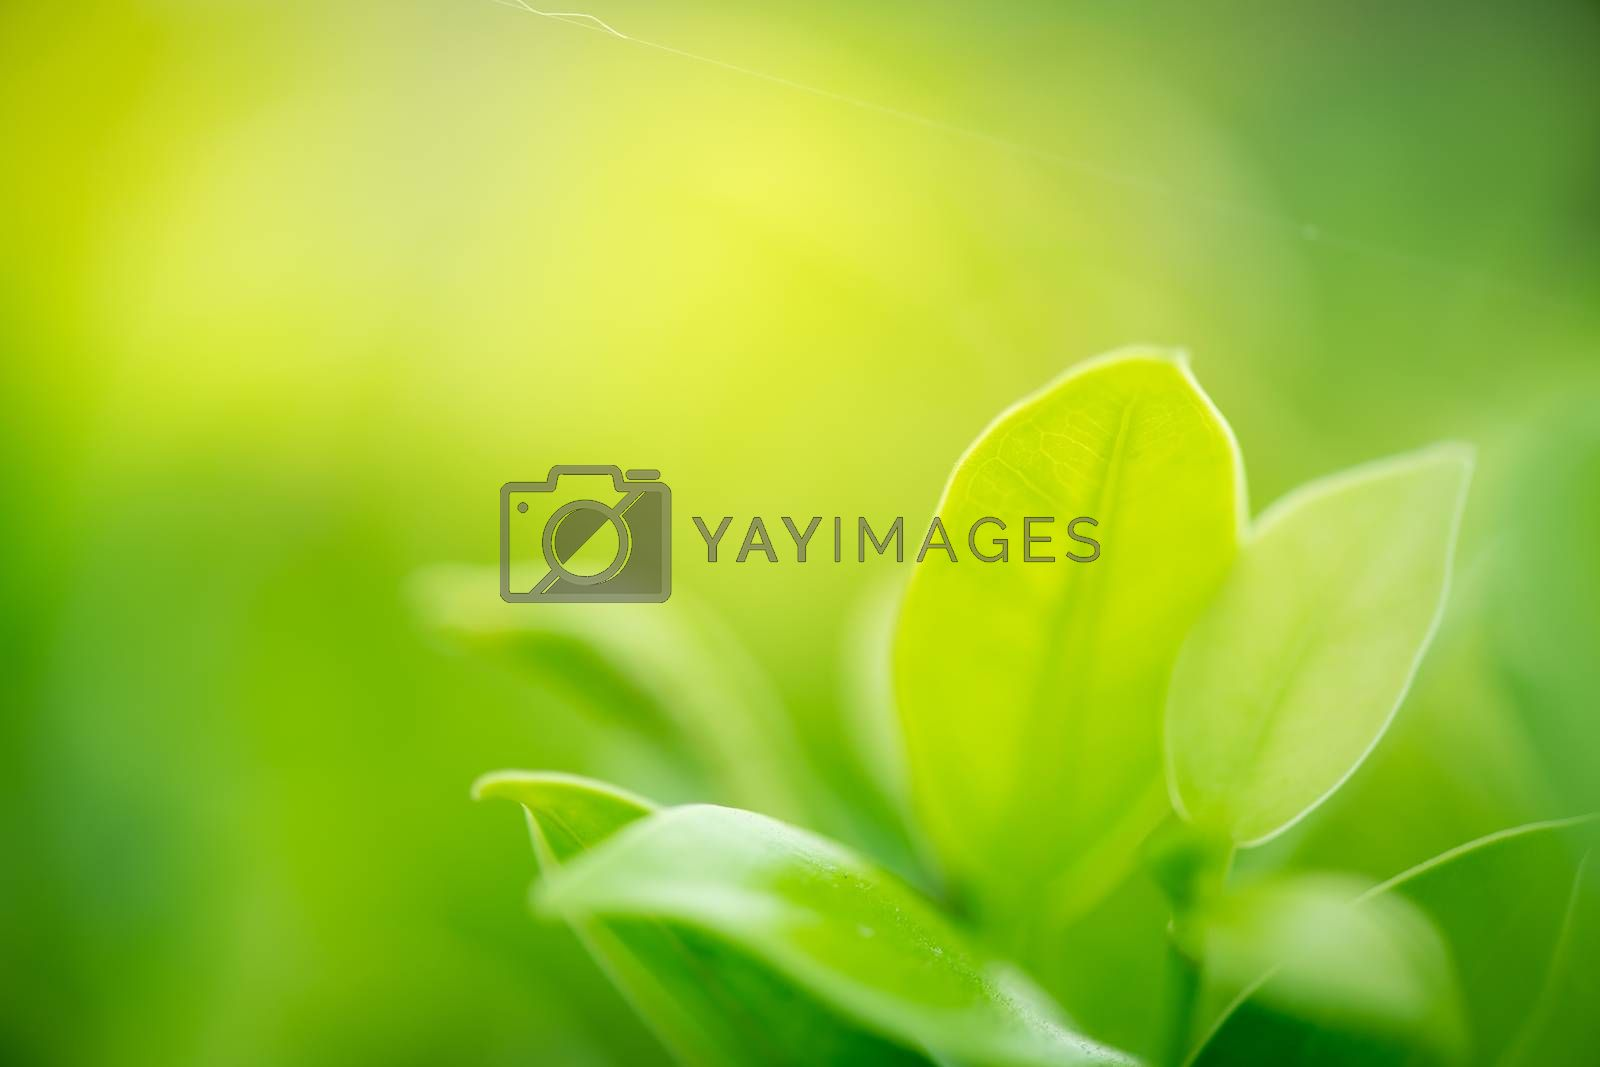 Royalty free image of closeup green leaf on green nature background by antpkr